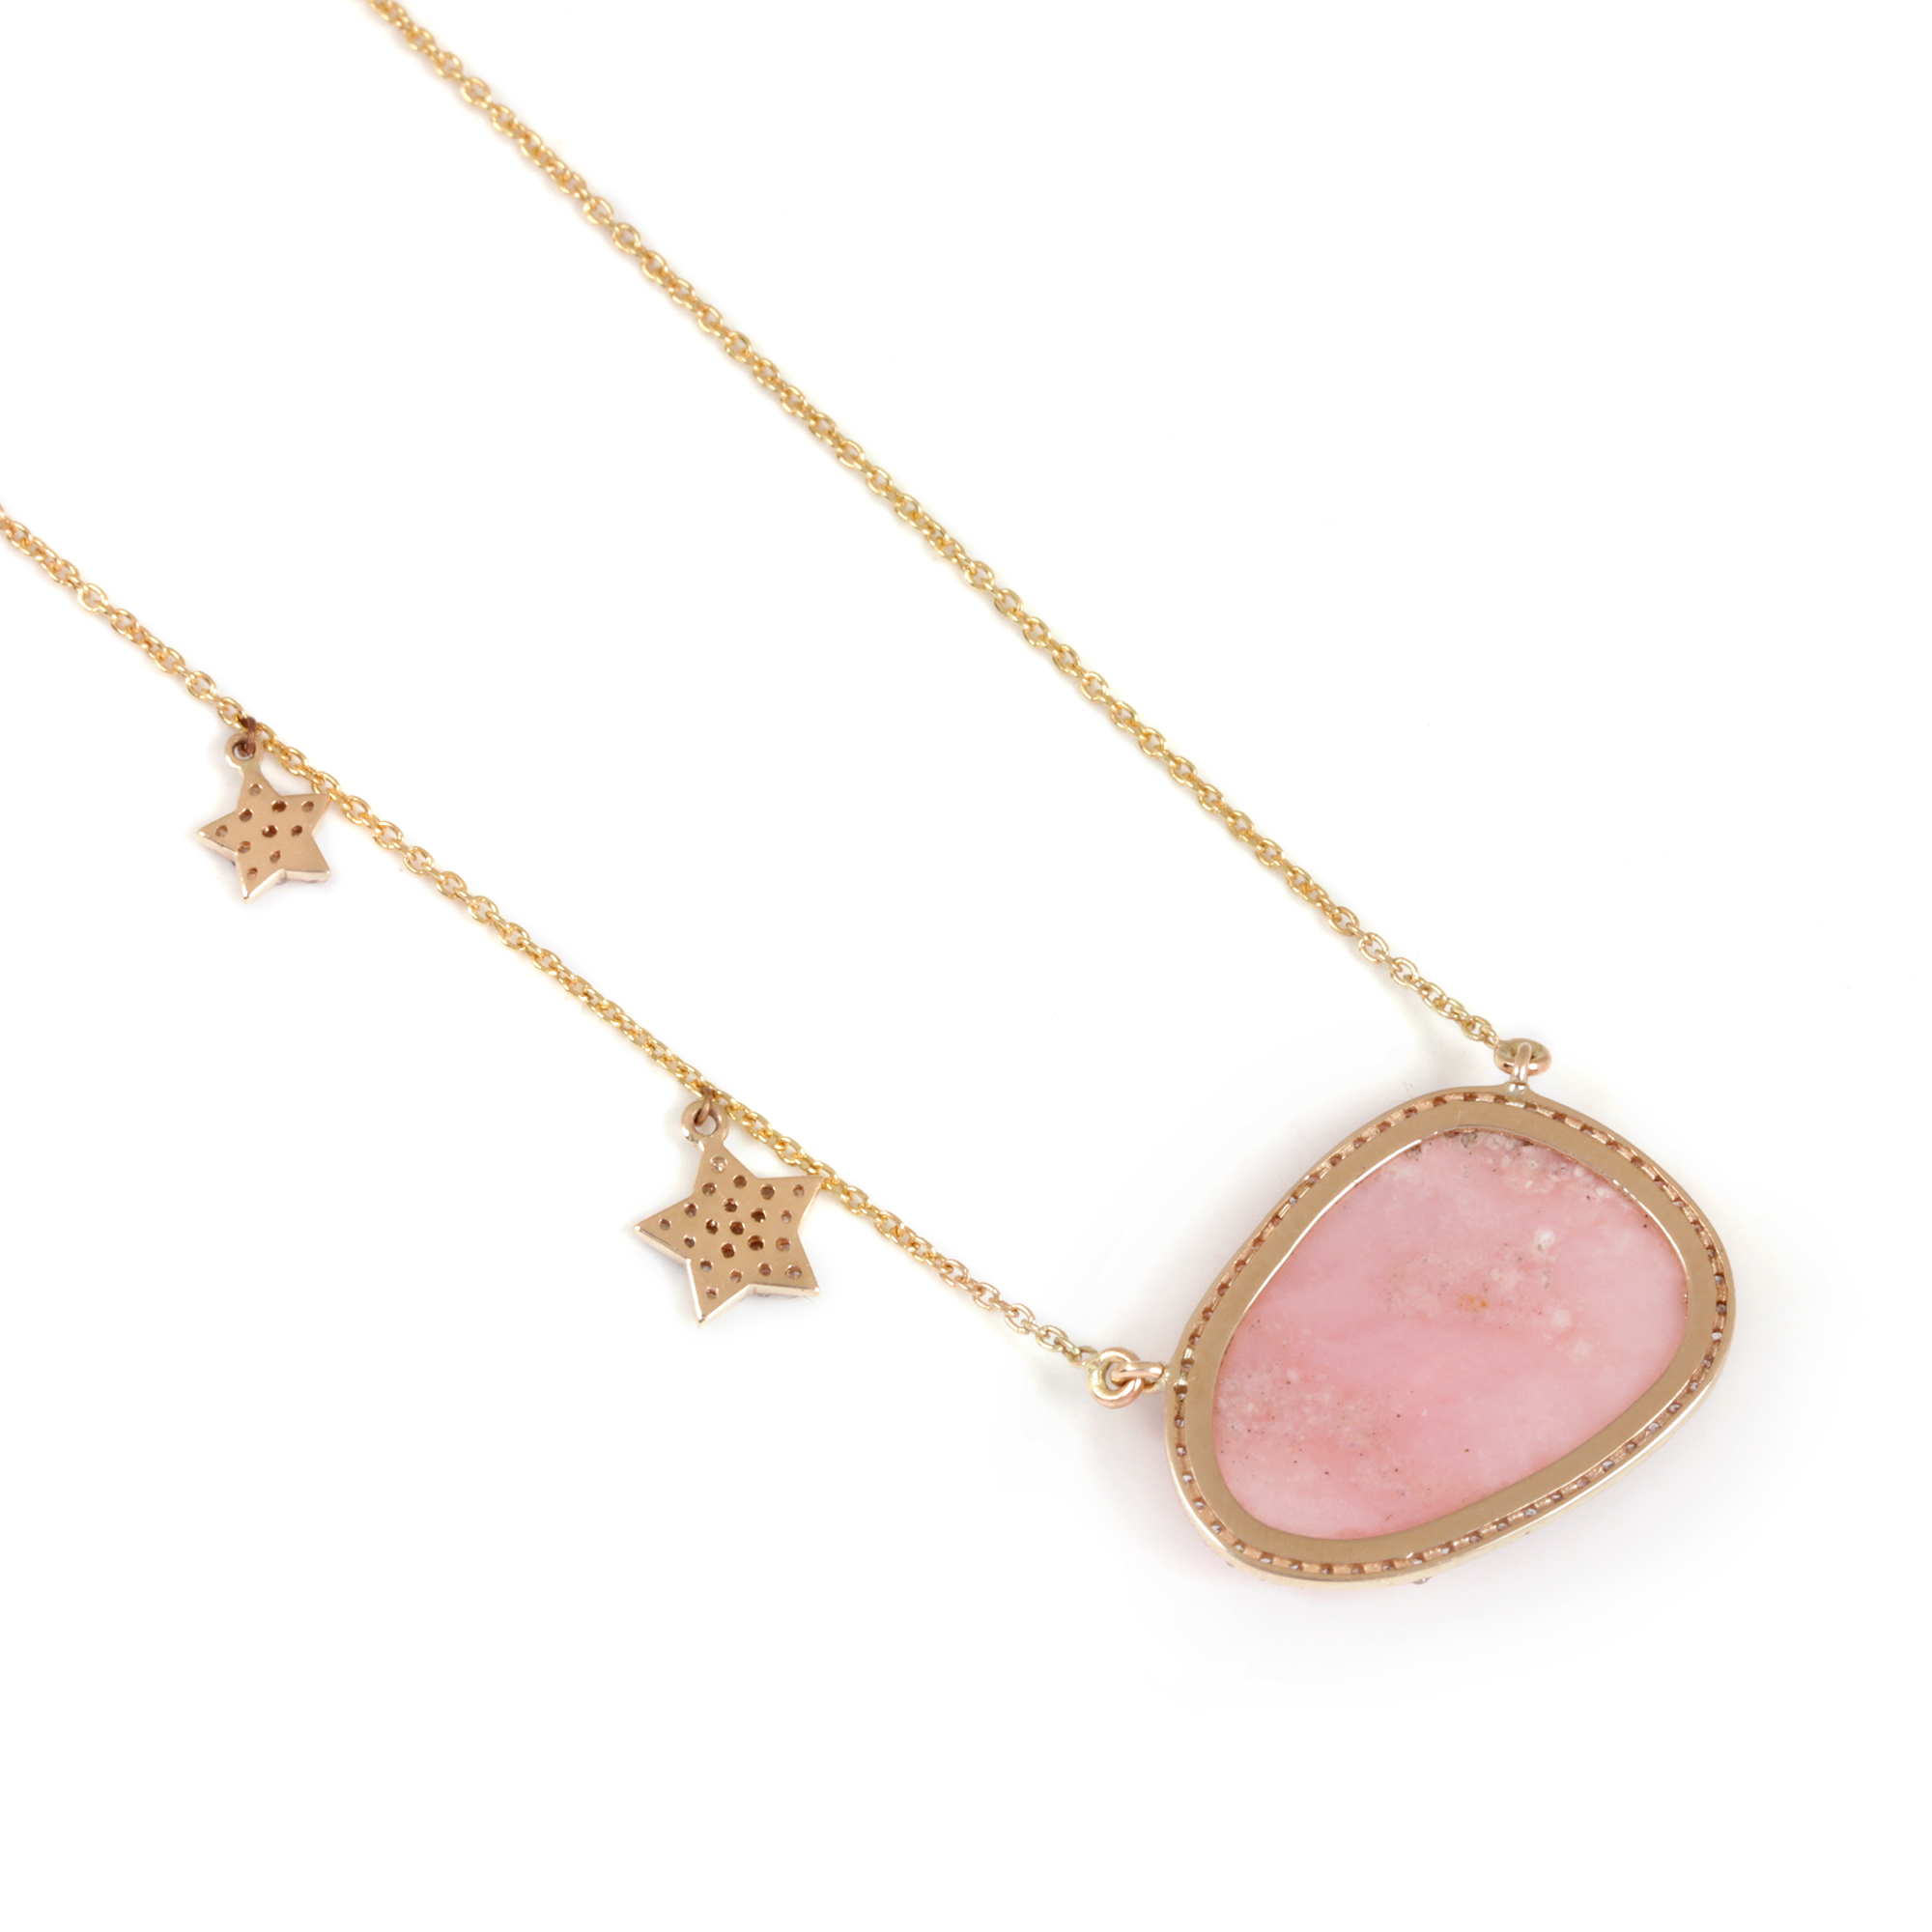 Pave Diamond Pink Opal Pendant Necklace 14K Solid Gold Chain Jewelry